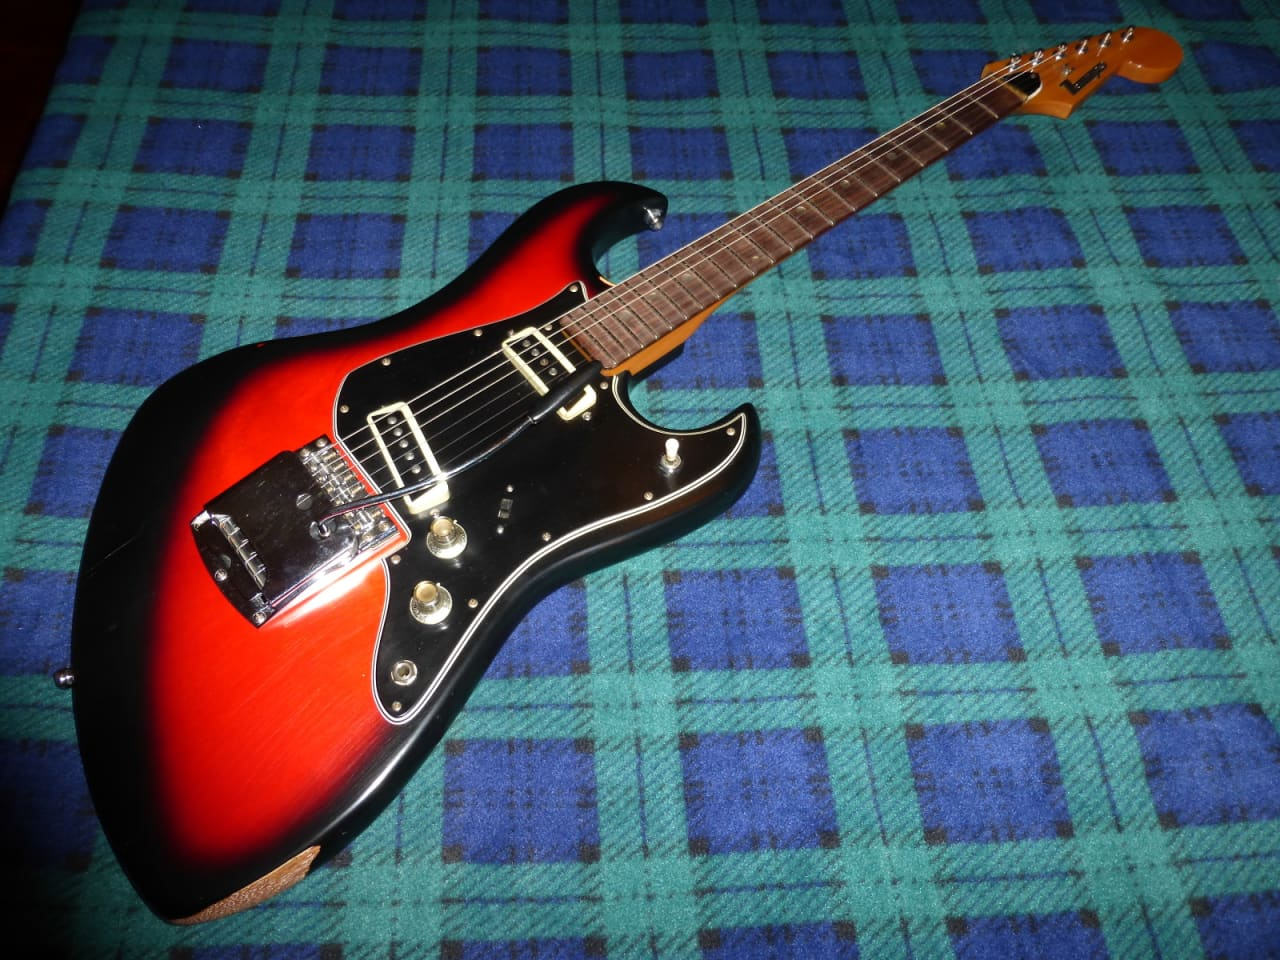 tempo electric guitar 1968 red black made in japan matsumoku reverb. Black Bedroom Furniture Sets. Home Design Ideas